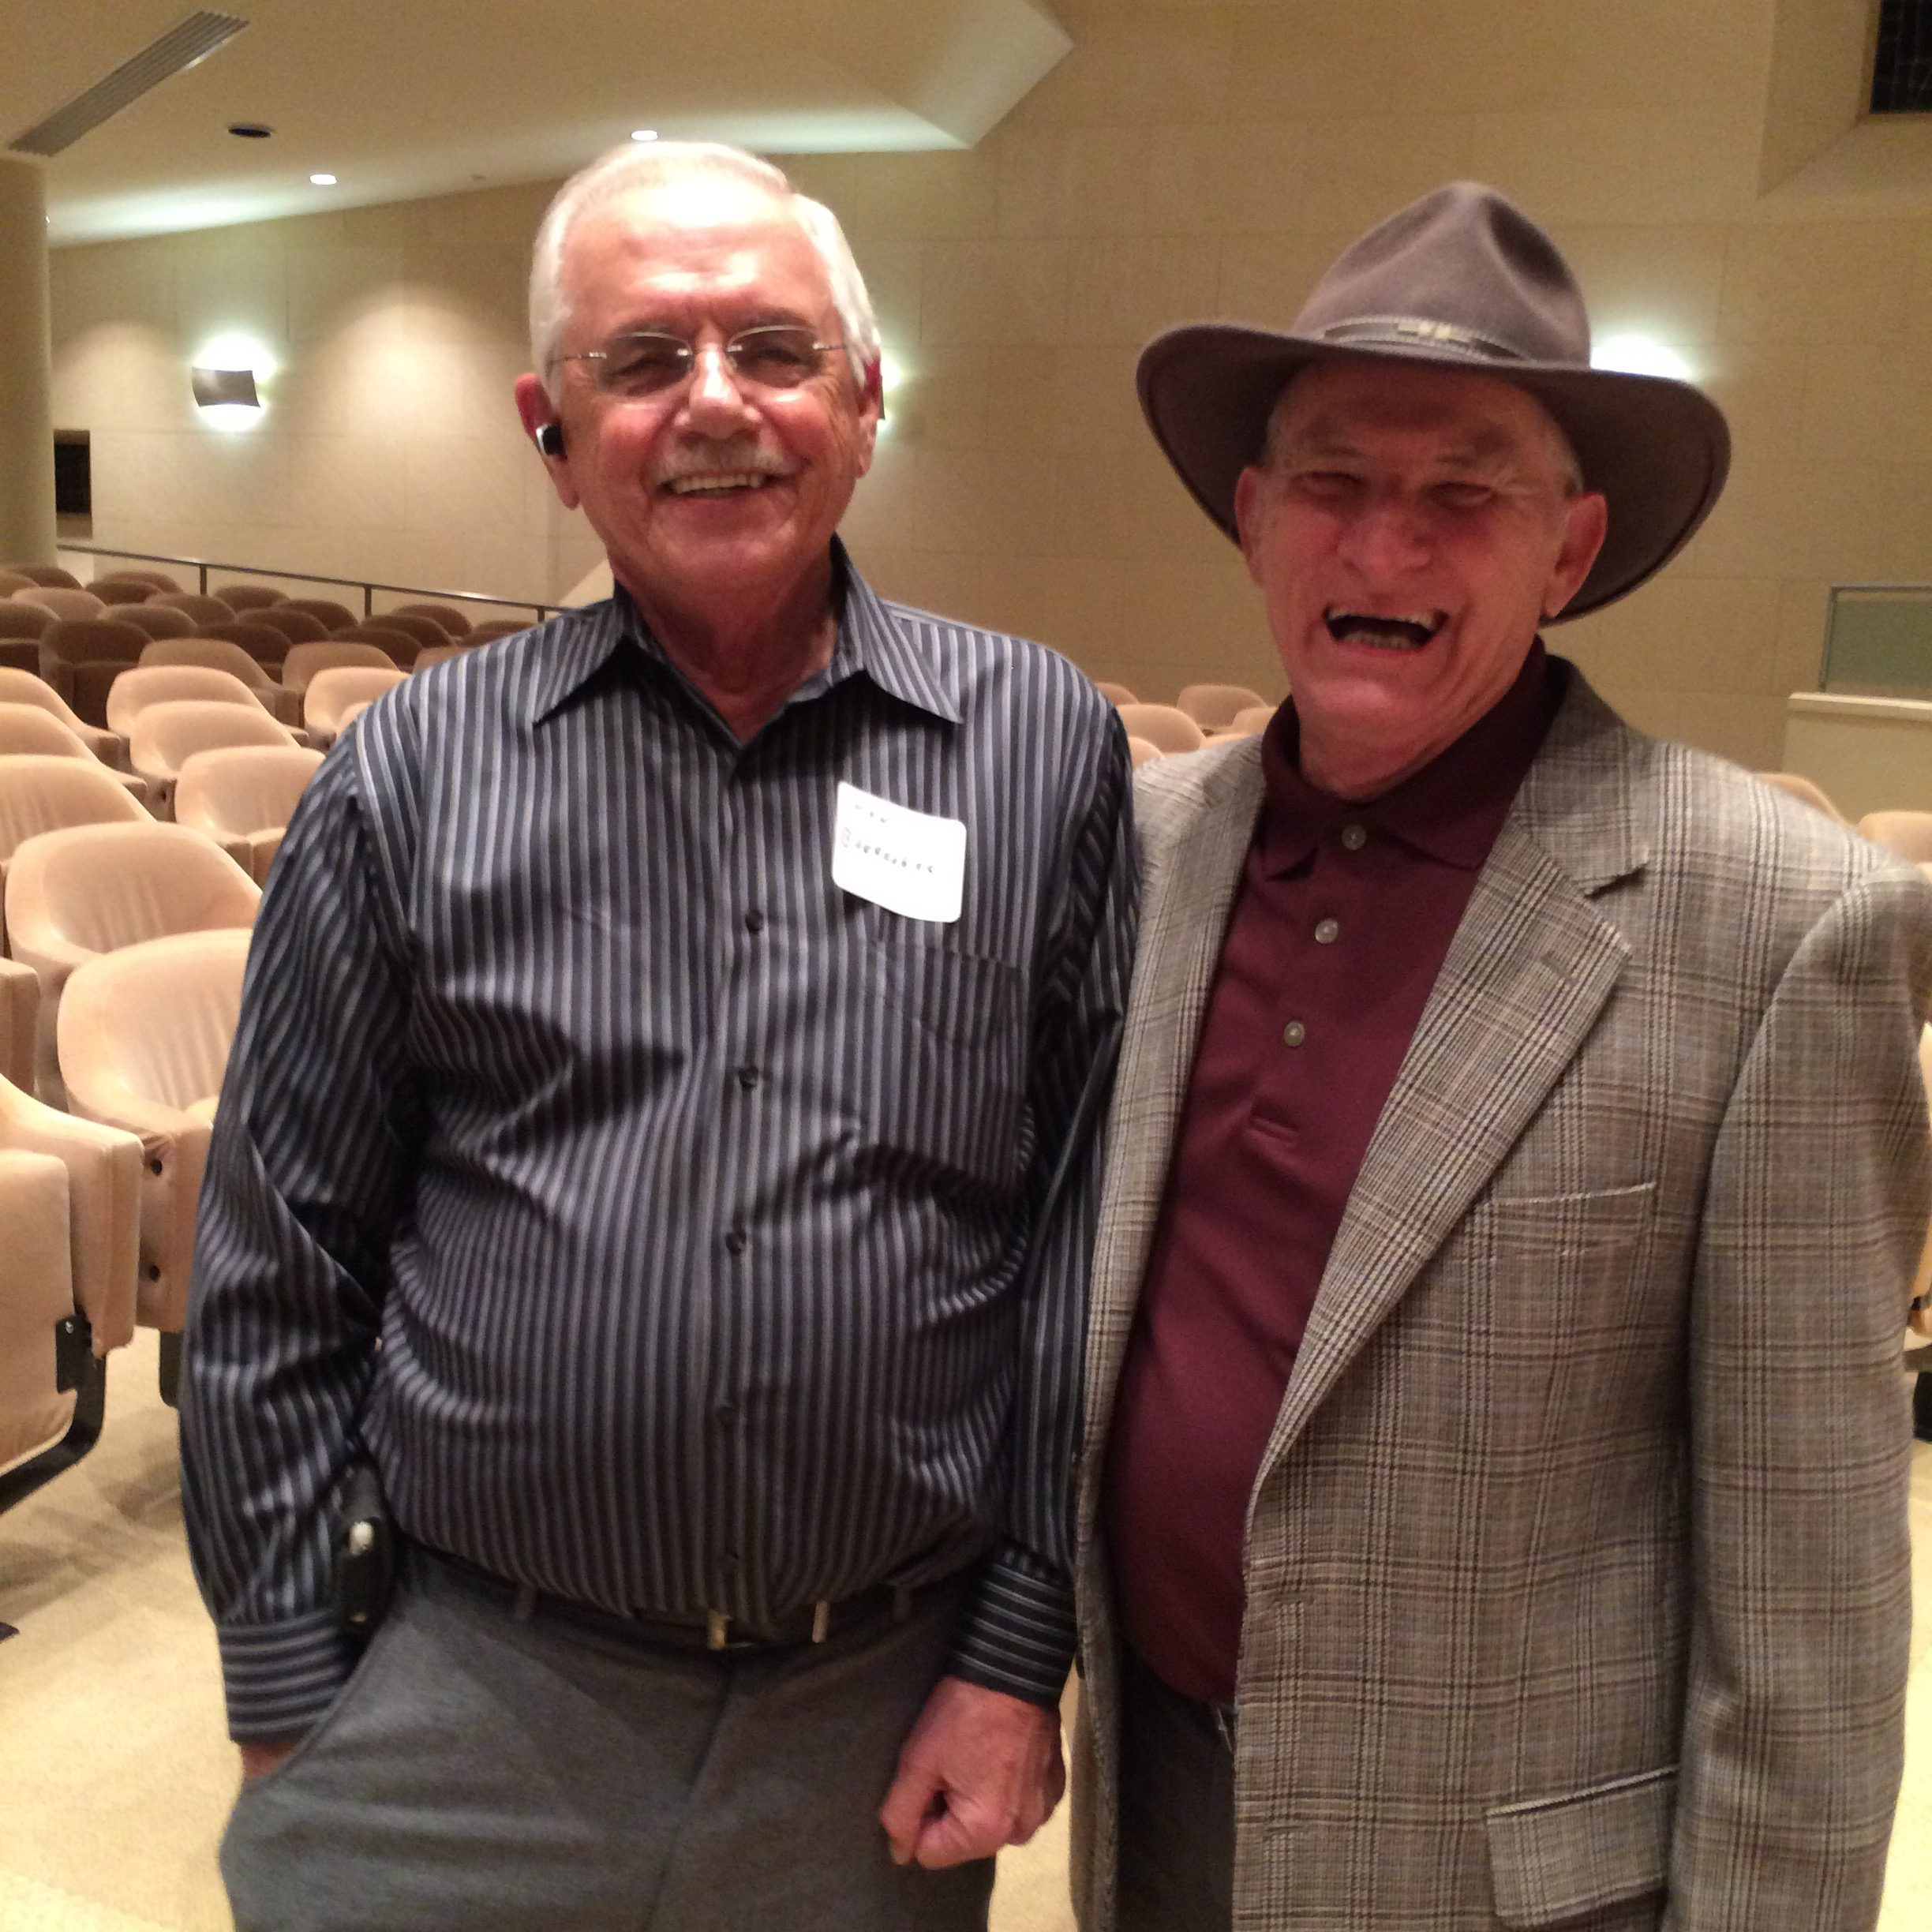 Ron Brookshire and Don Delp